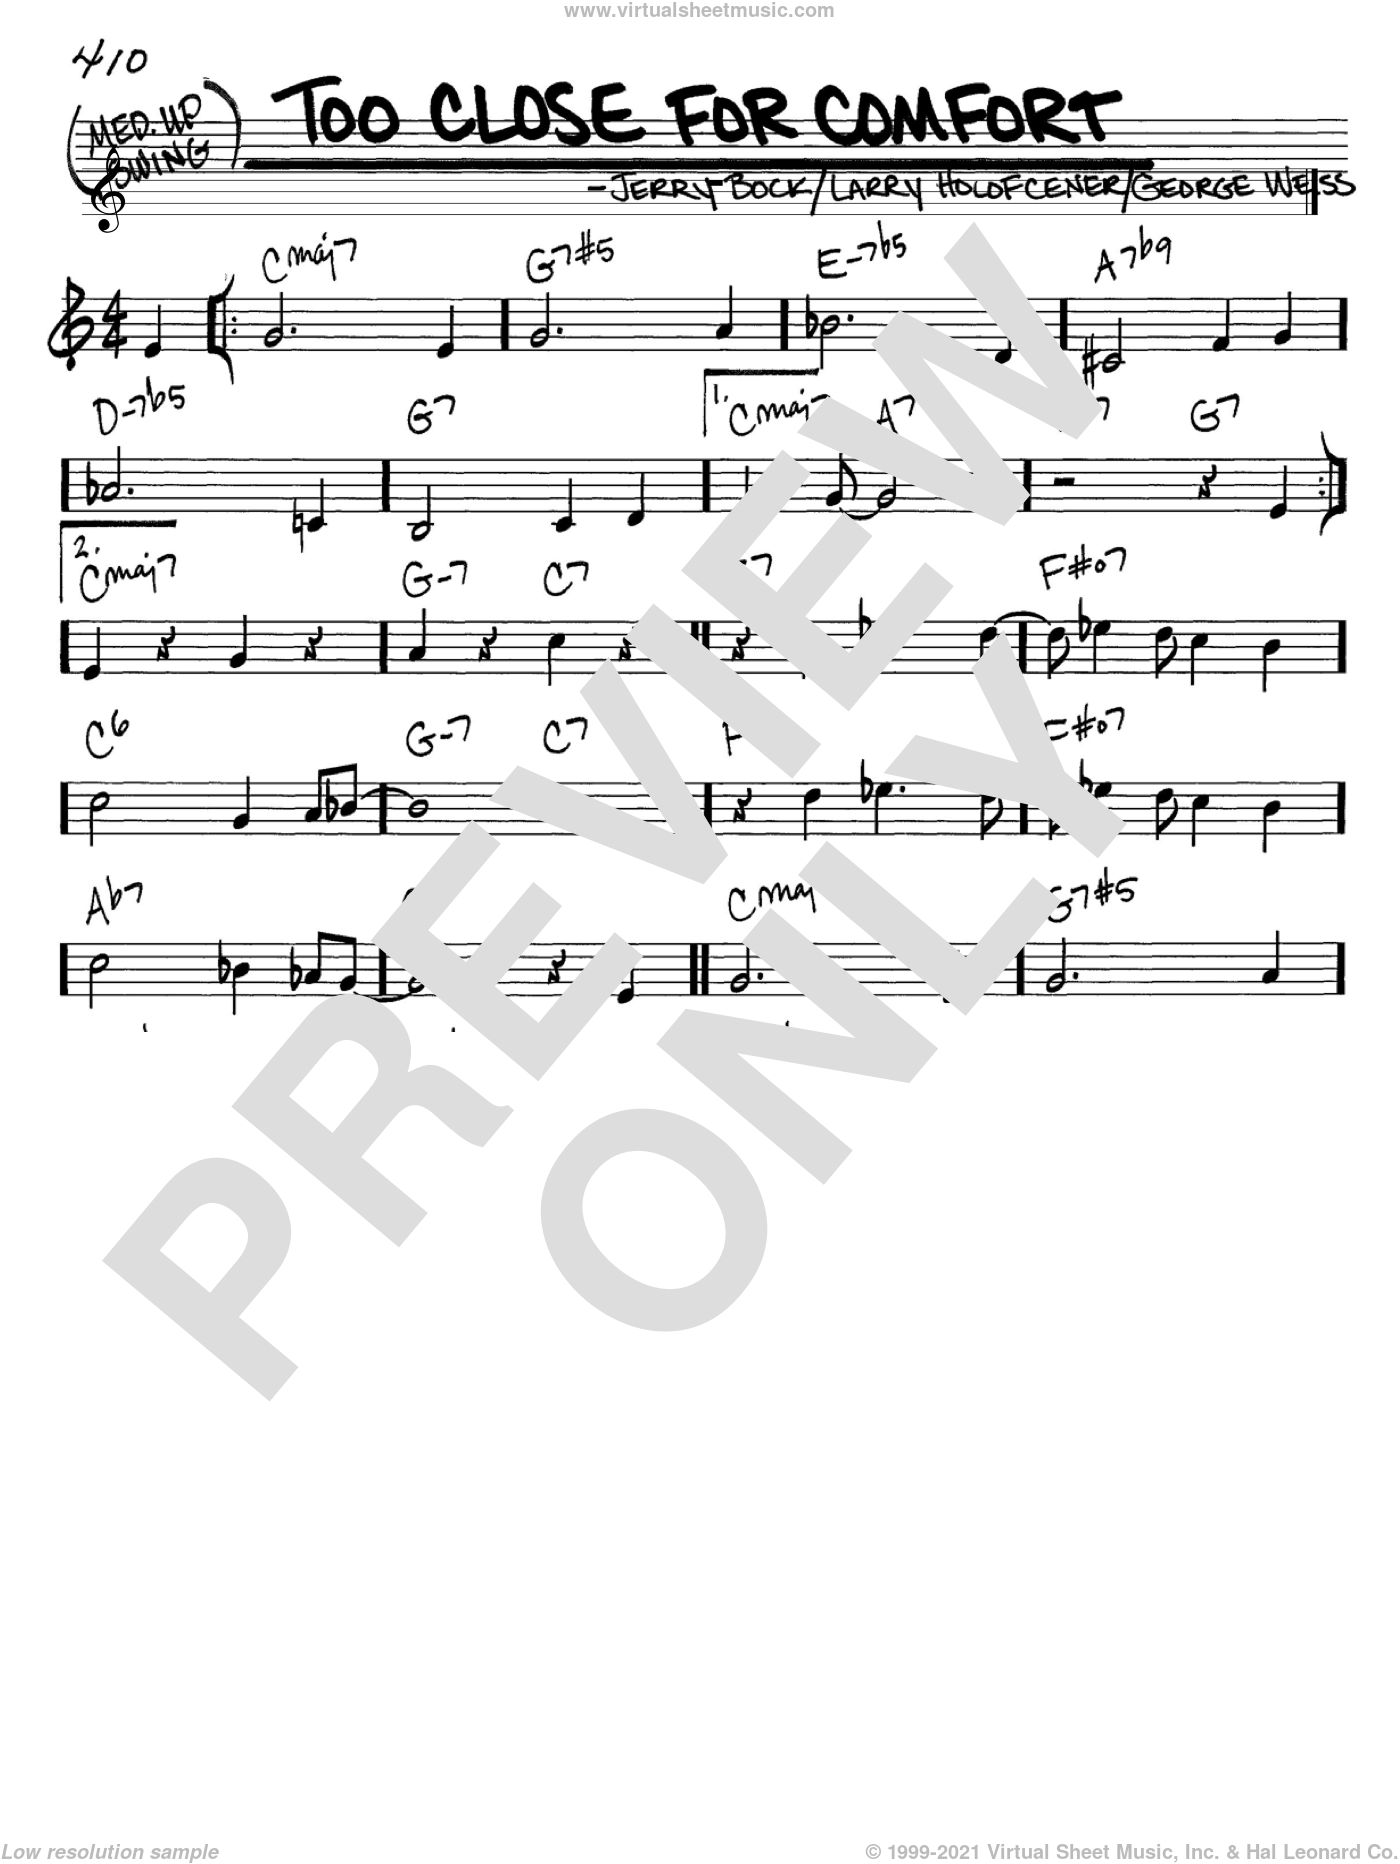 Too Close For Comfort sheet music for voice and other instruments (C) by Larry Holofcener, George David Weiss and Jerry Bock. Score Image Preview.